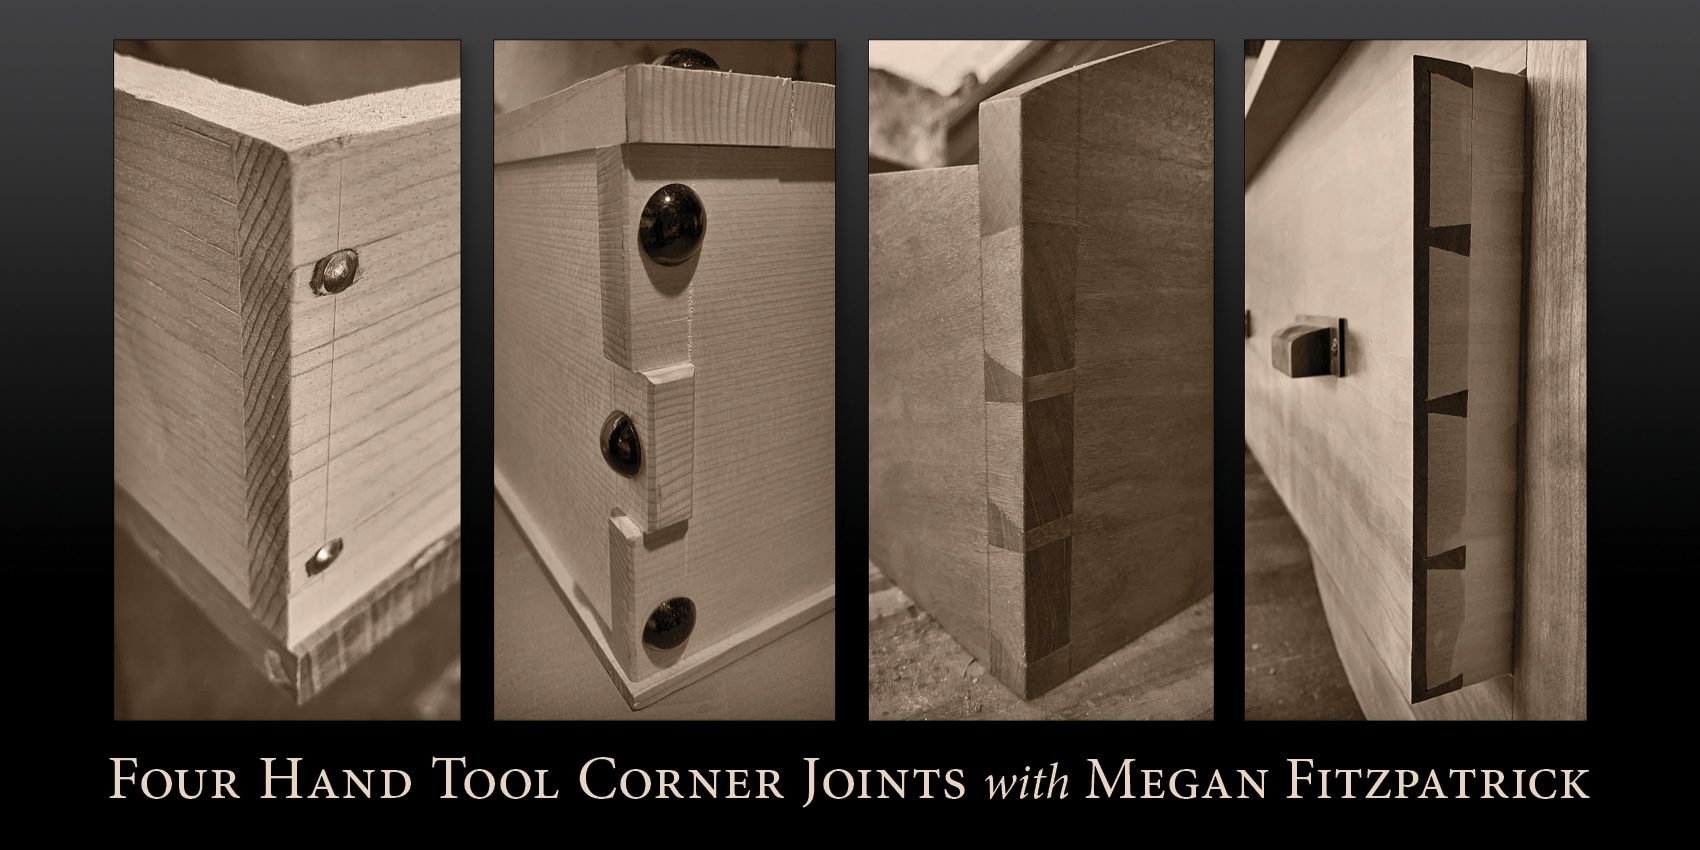 Weekend Workshop: Four Hand Tool Corner Joints, July 20-21